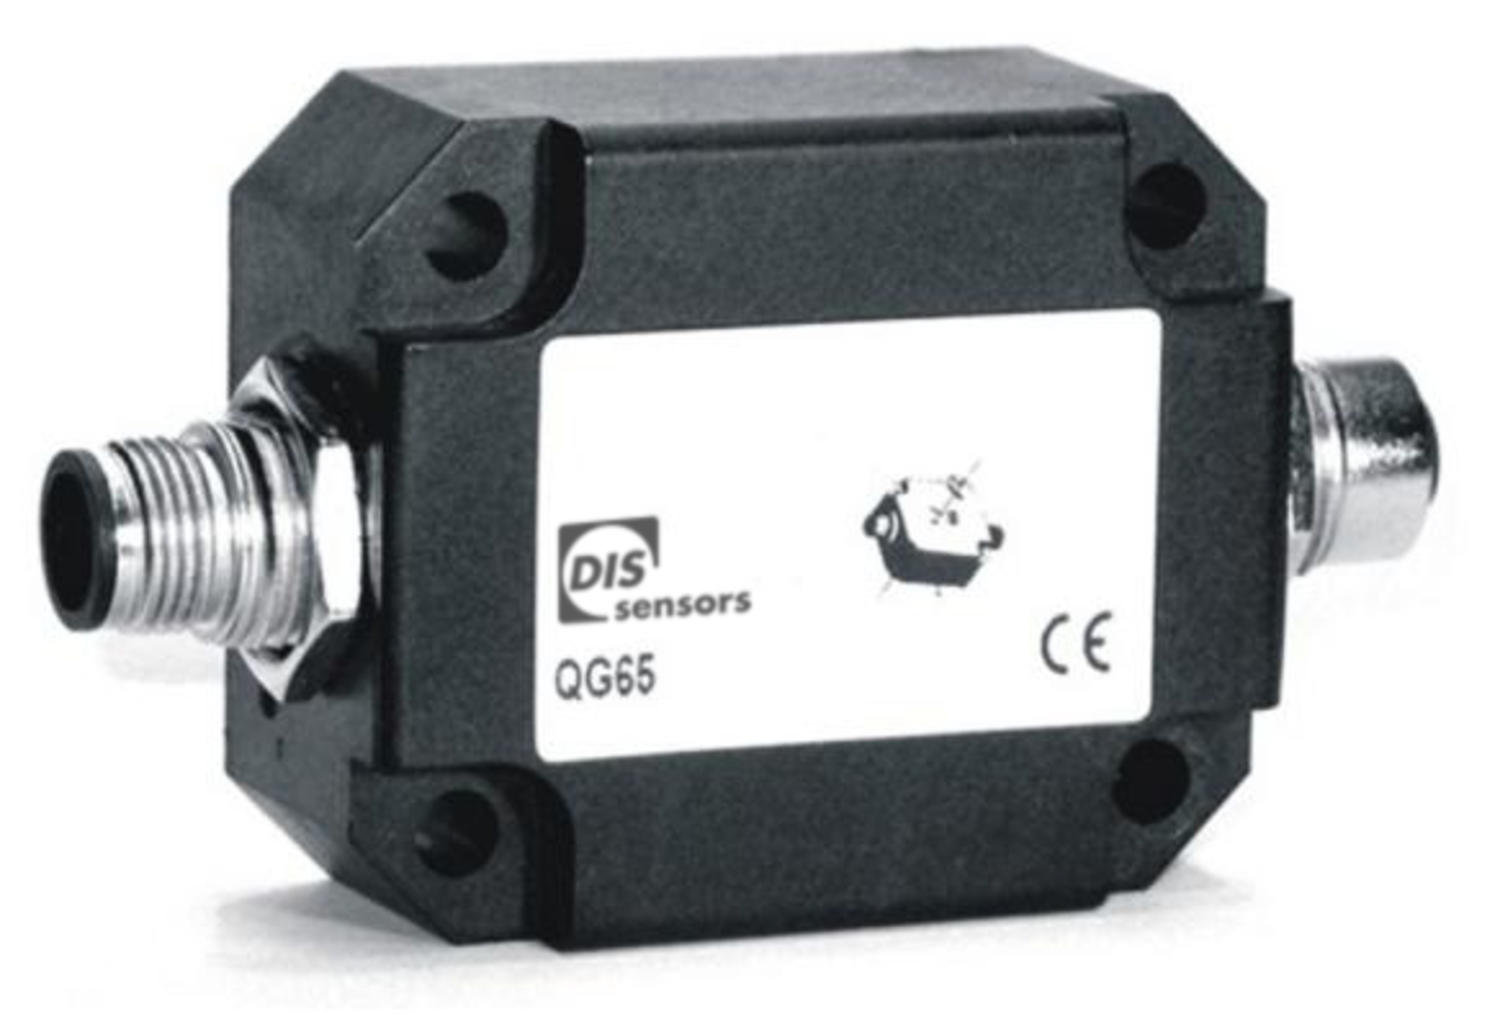 QG65 tilt switch, single or twin axis, CANopen ouput